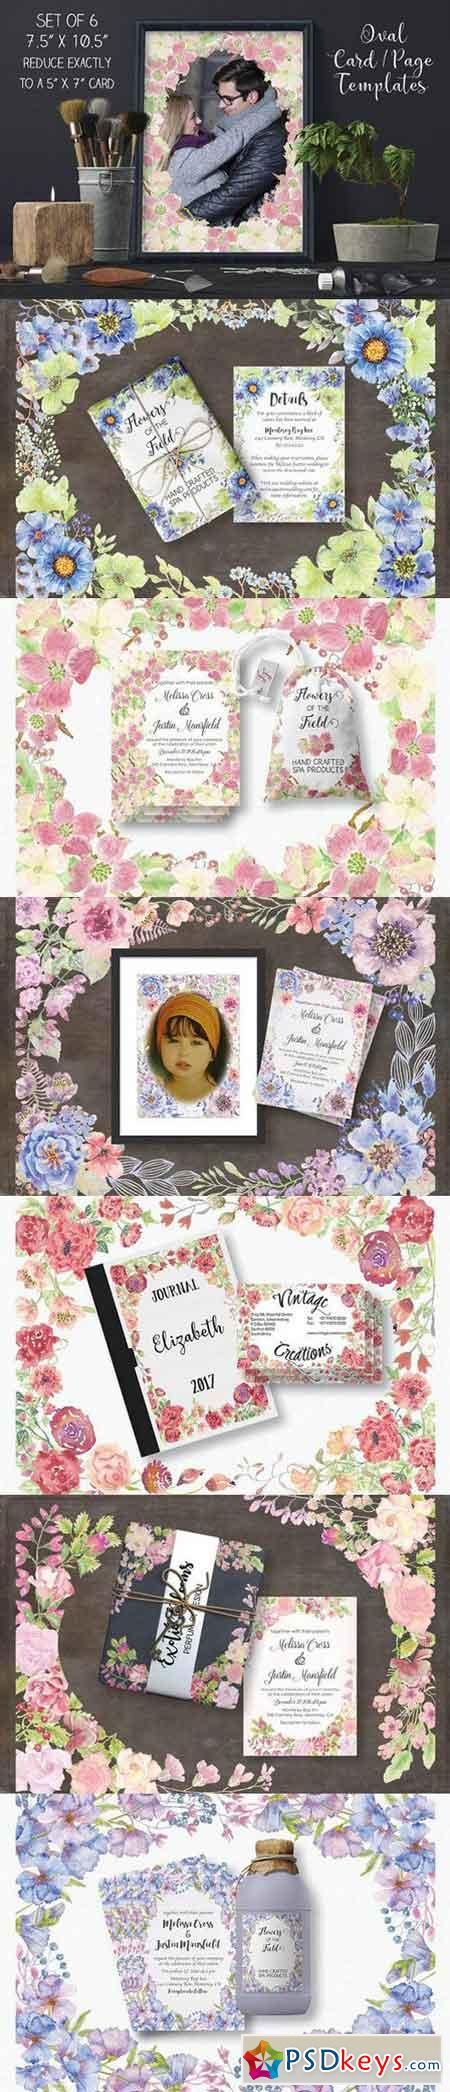 Set of 6 oval card templates 134338